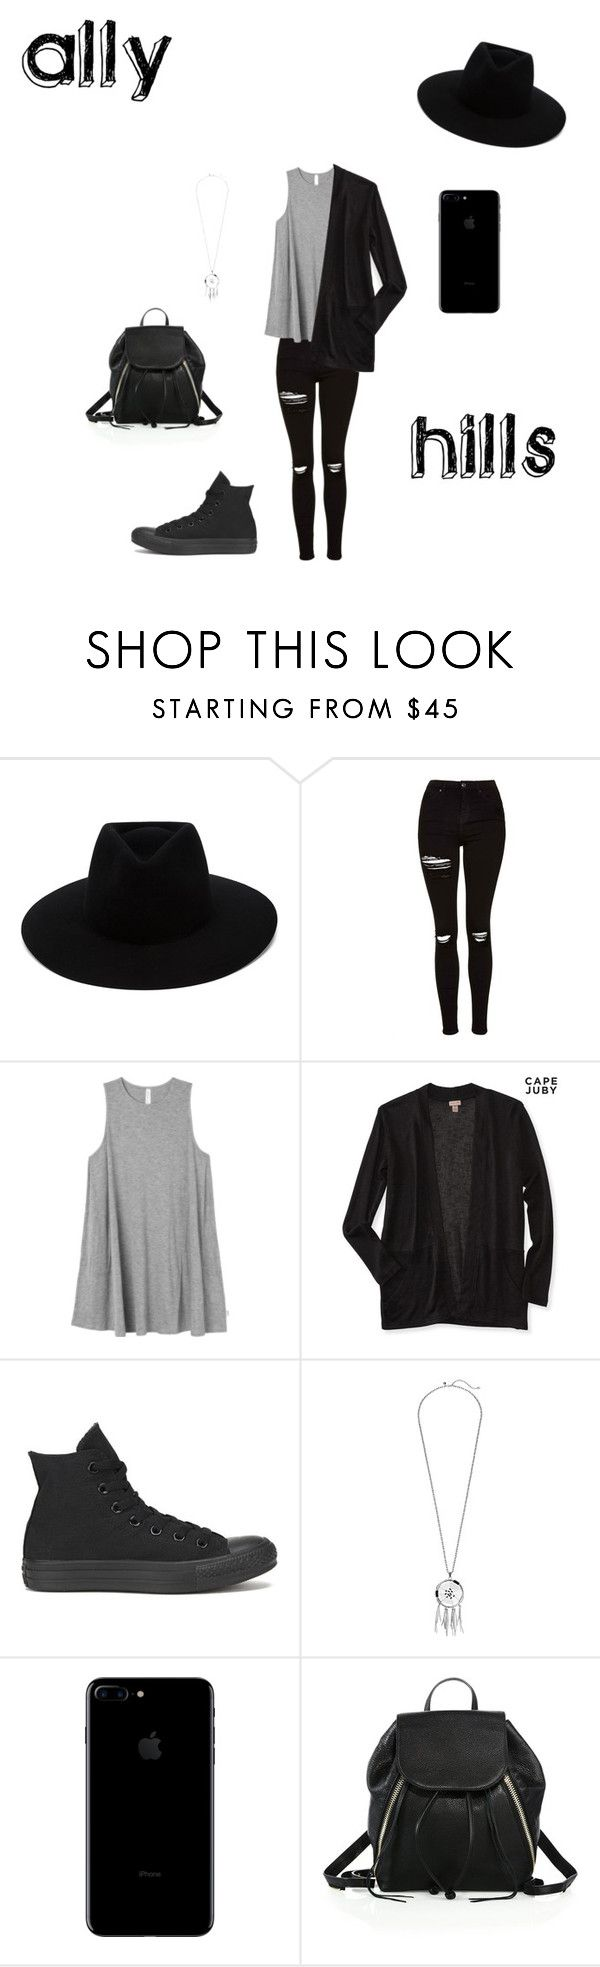 """""""Ally Hills"""" by briia-lewiis ❤ liked on Polyvore featuring rag & bone, Topshop, RVCA, Aéropostale, Converse and Rebecca Minkoff"""